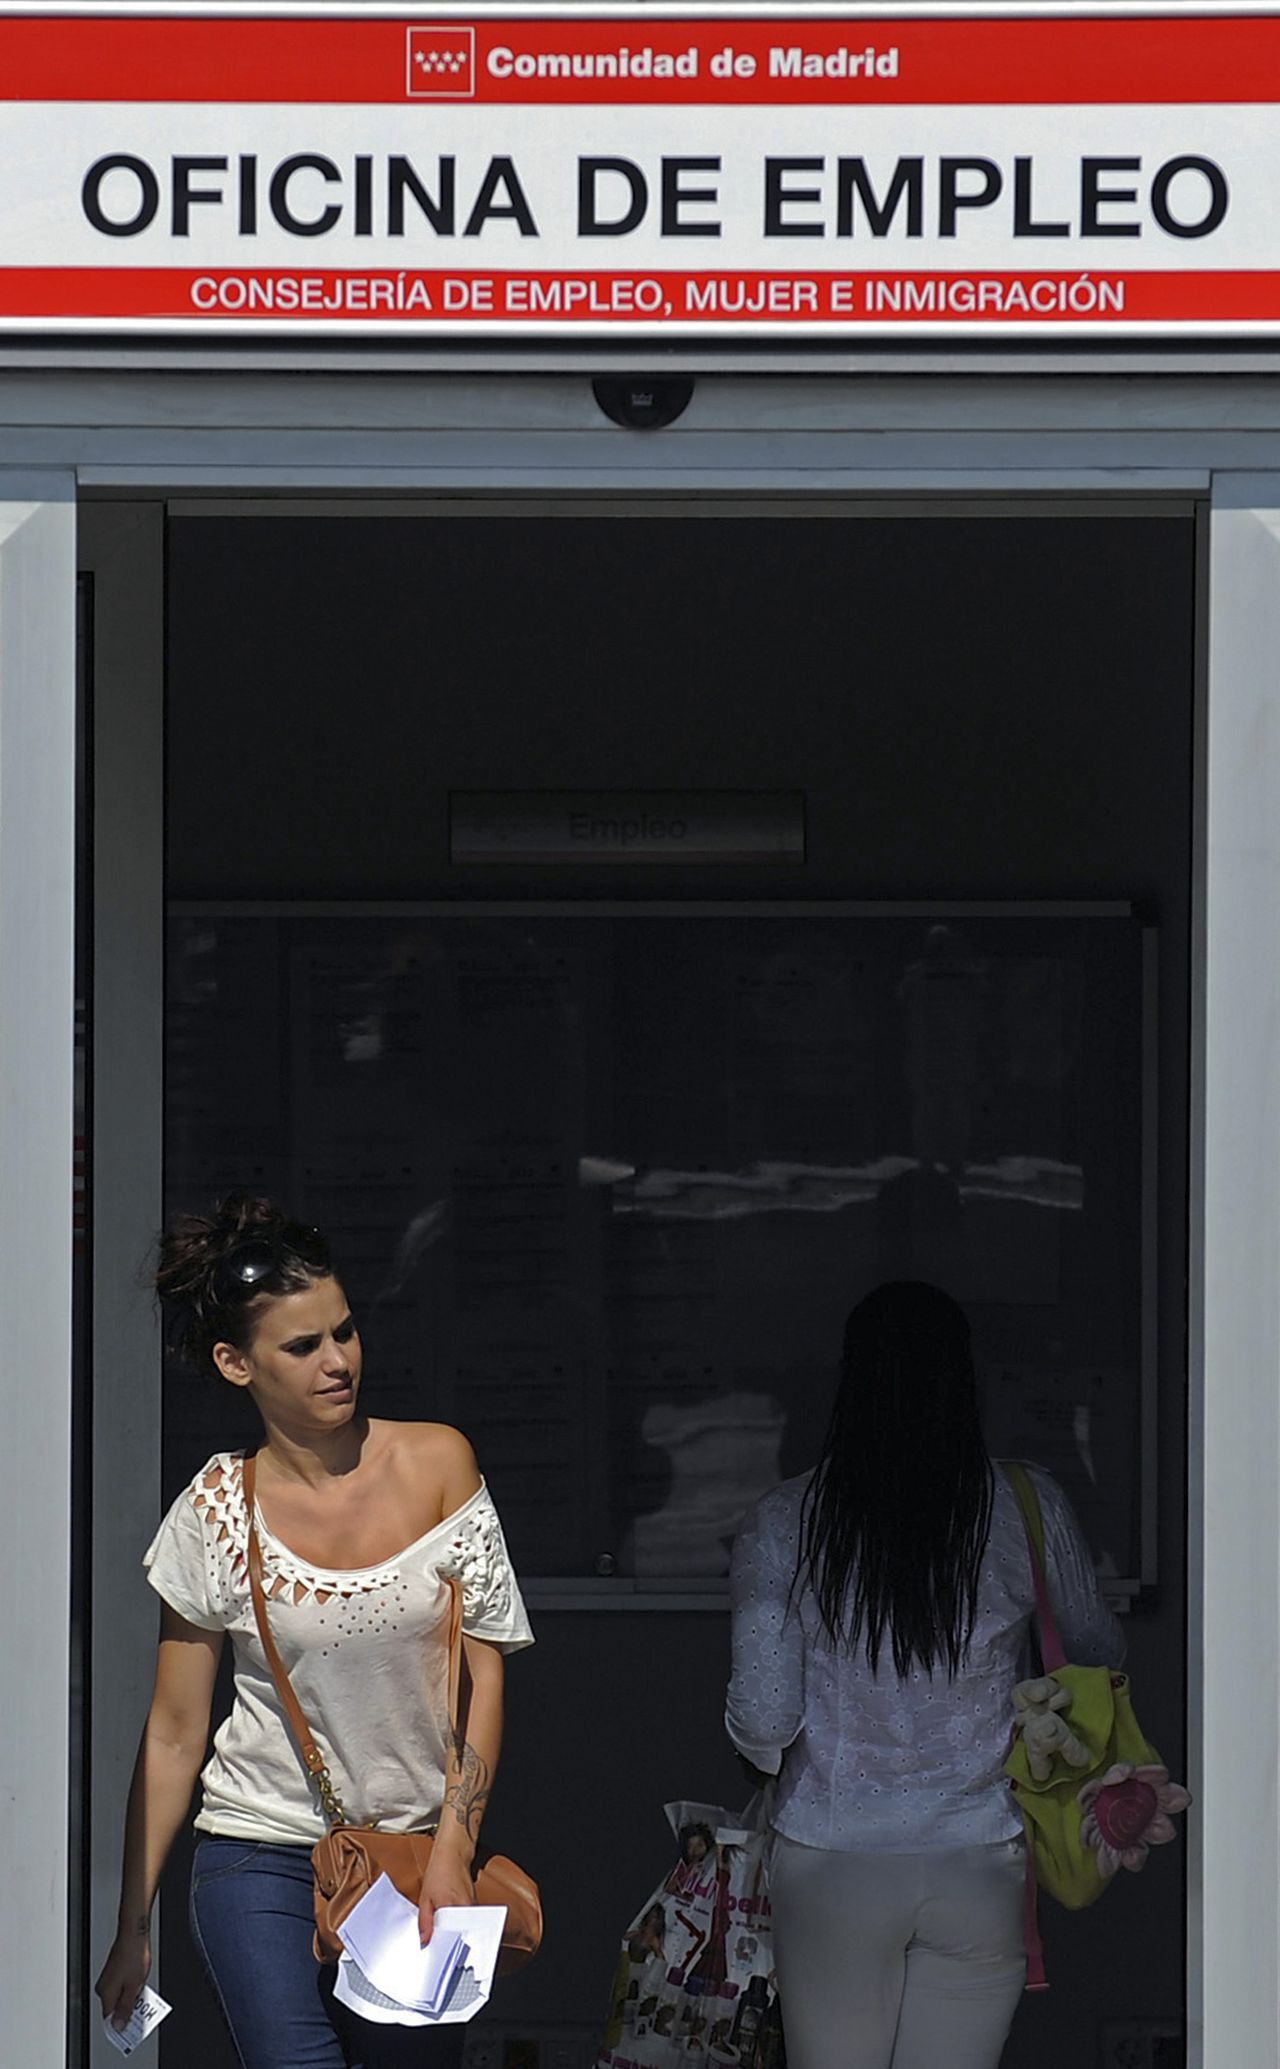 A woman leaves an employment agency in Madrid, Spain, on Thursday, June 30, 2011. Bank of Spain Governor Miguel Angel Fernandez Ordonez called for a deeper overhaul of labor laws to tackle the country's 21 percent unemployment rate, the highest in Europe, which he said is an obstacle to the economic recovery and sustainable public finances. Photographer: Denis Doyle/Bloomberg